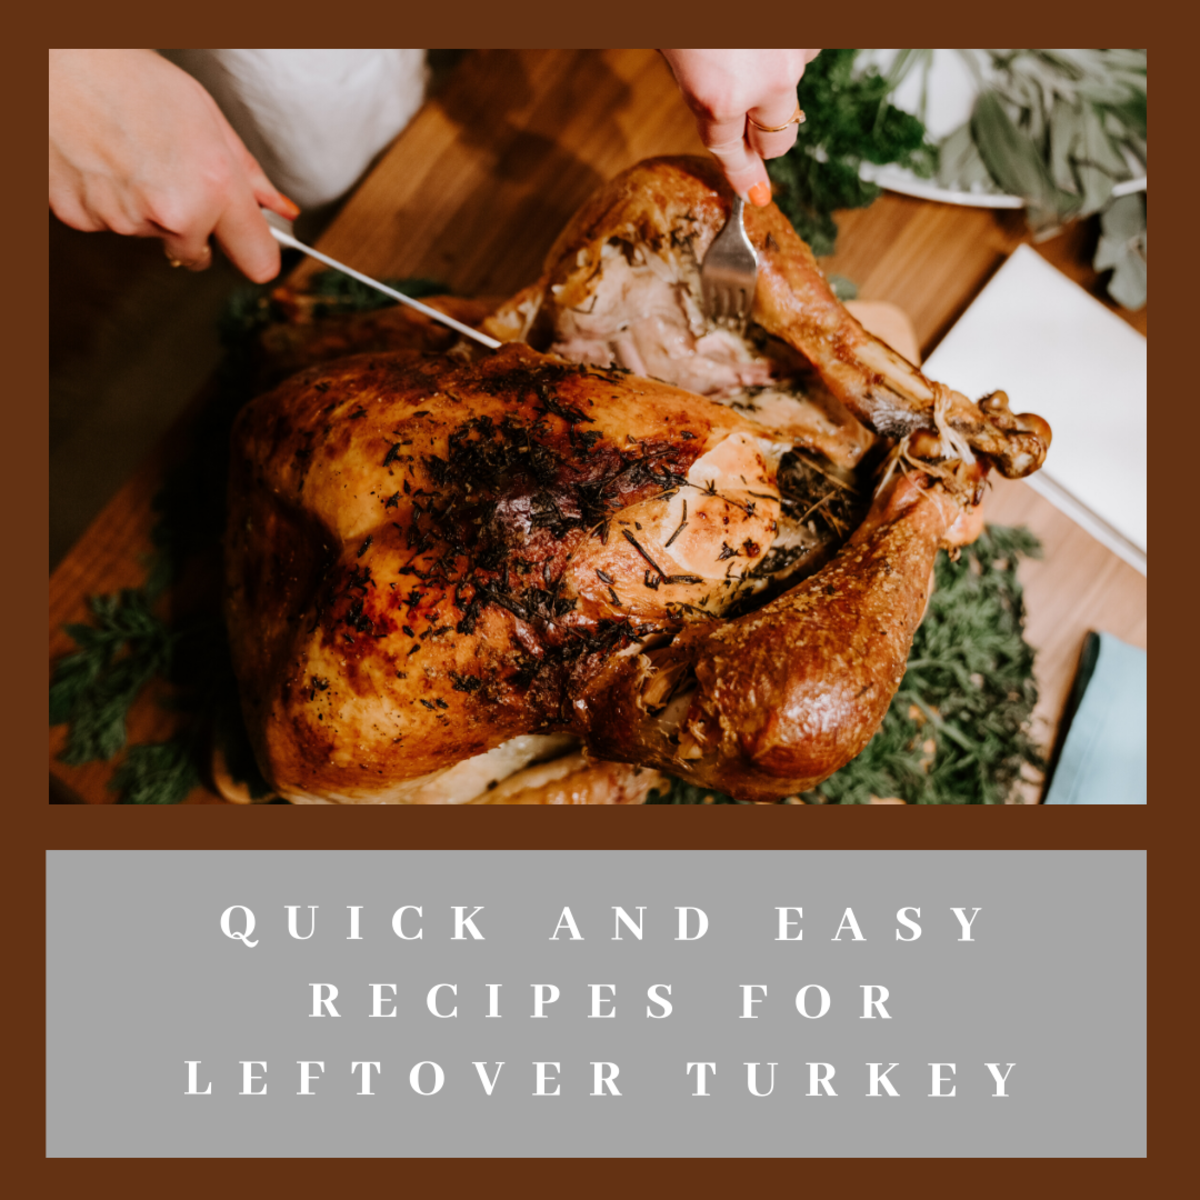 Over 15 Quick and Easy Recipes for Leftover Turkey